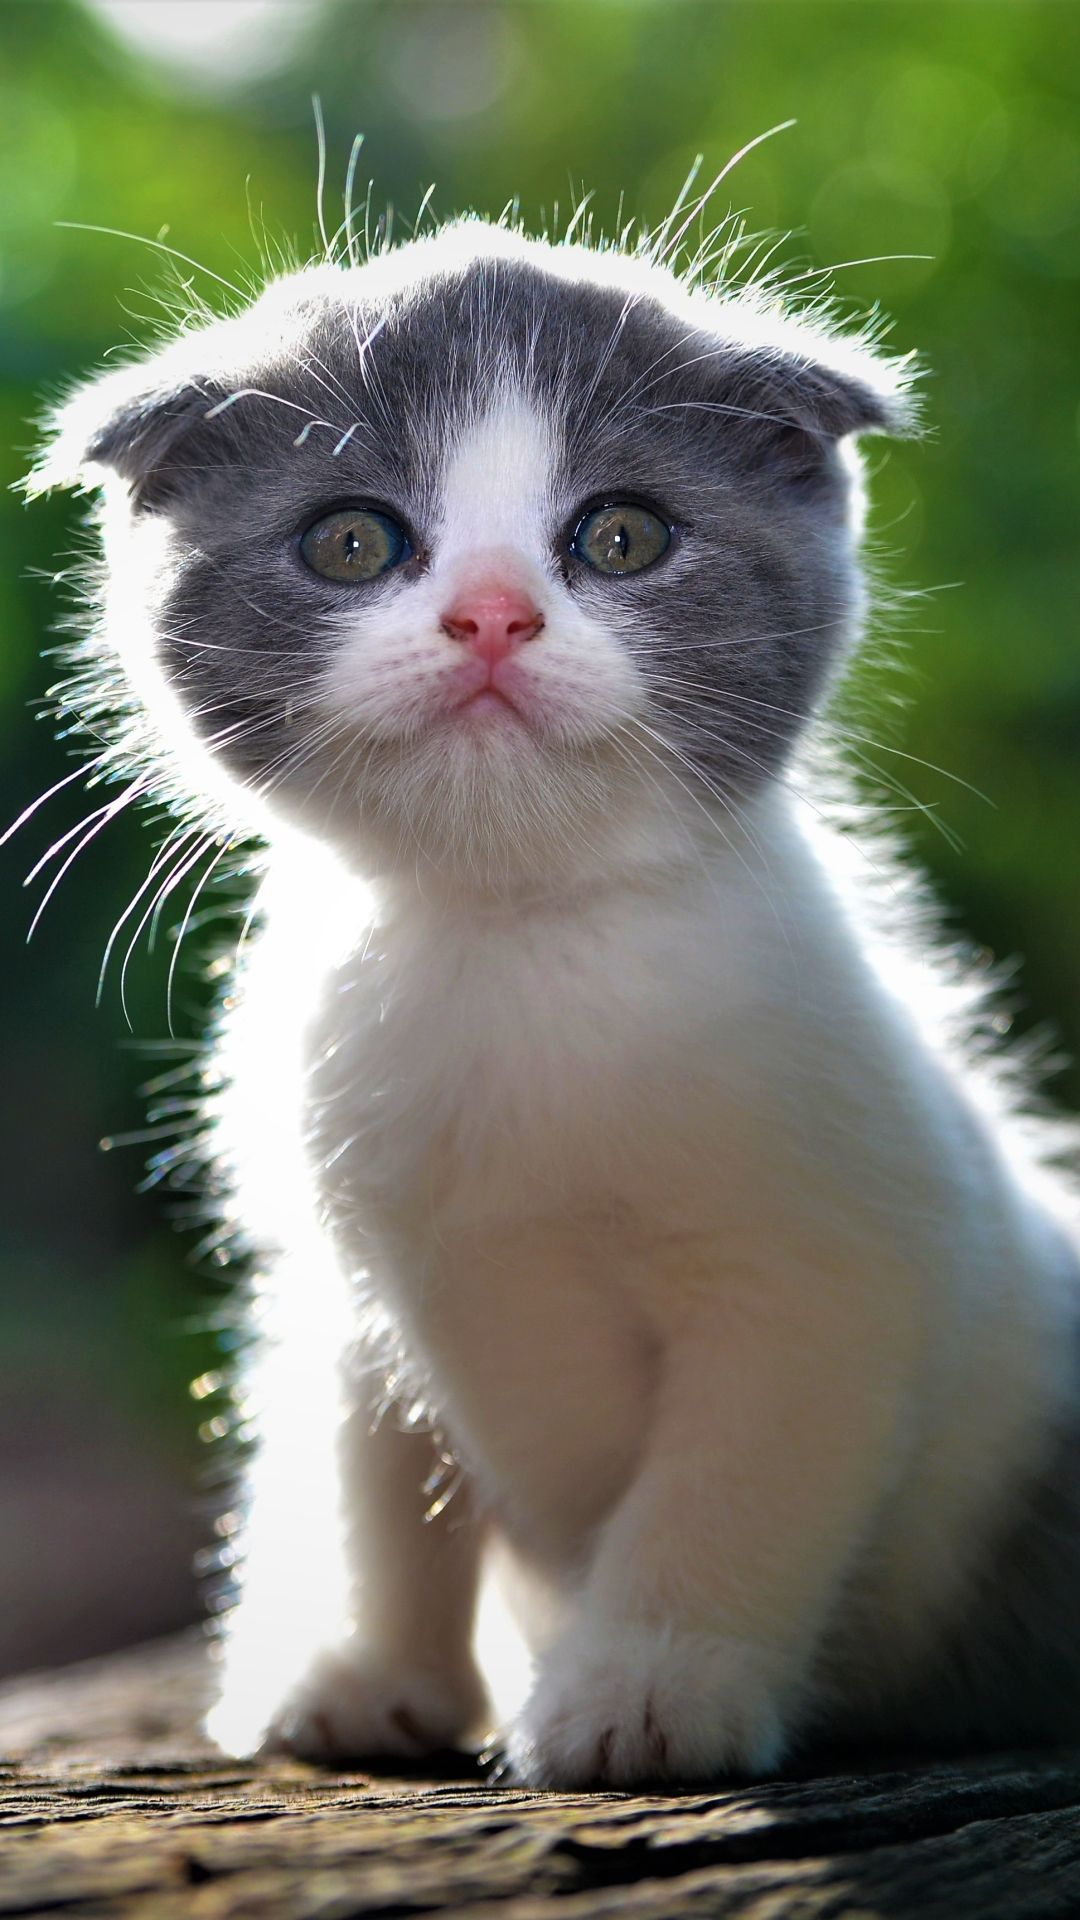 Pin By Rayleen Tritt On Adoro Este Cute Animals Cats And Kittens Animals